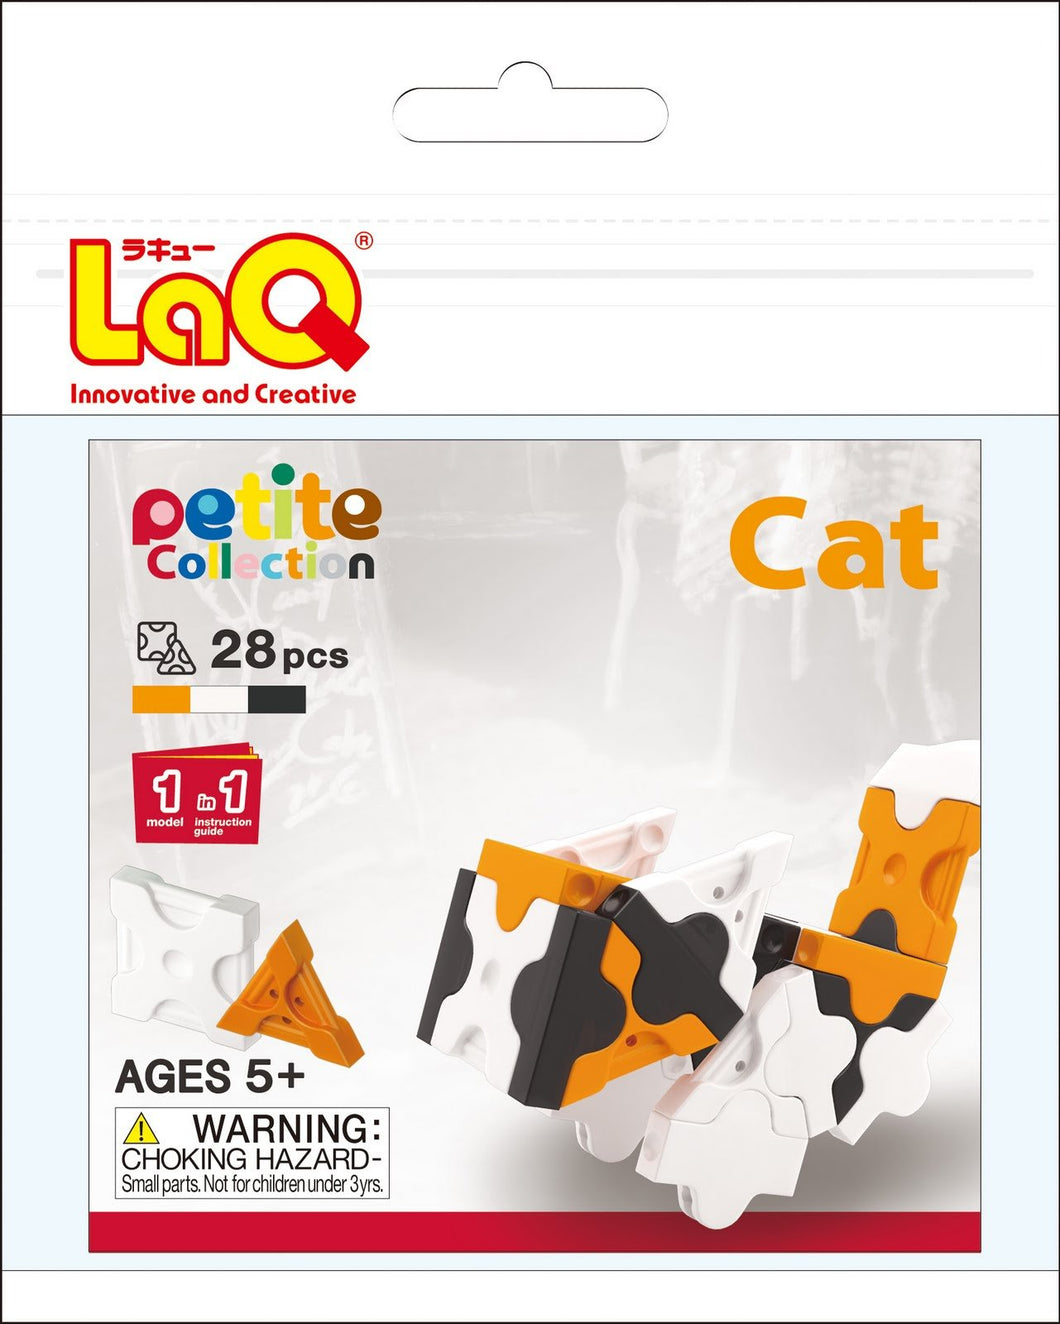 Cat set package featured in the LaQ petite set